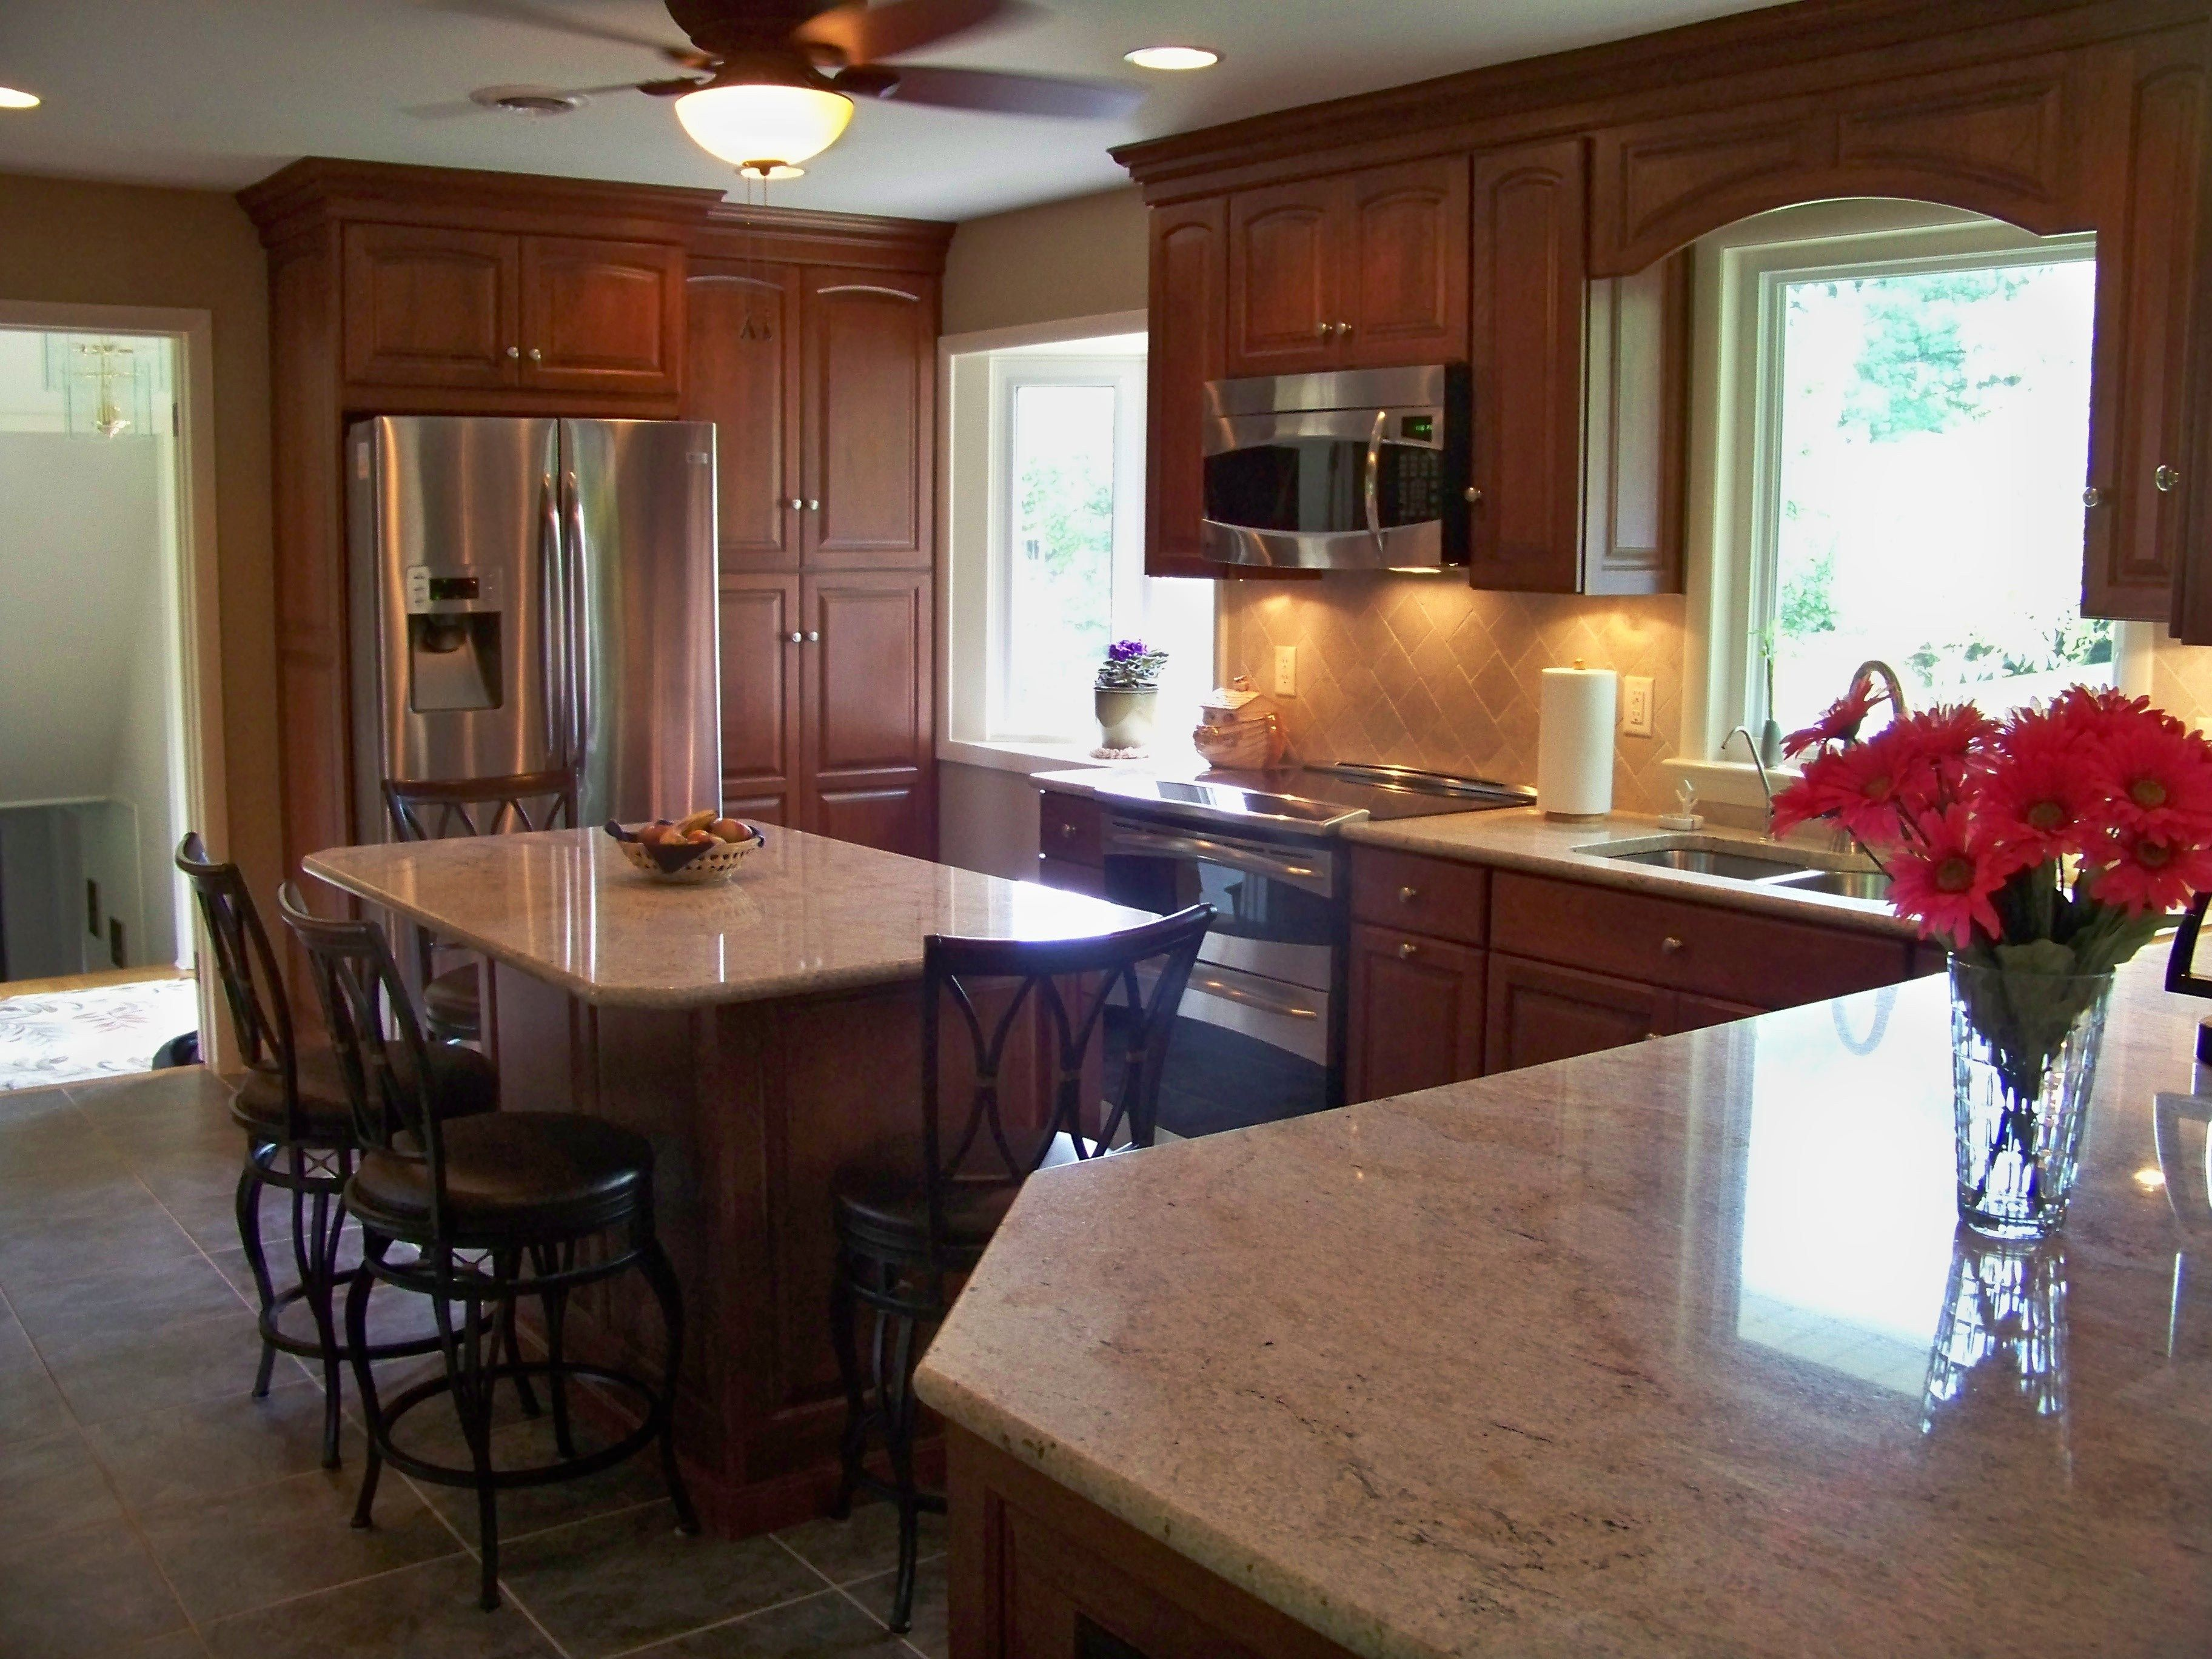 17 Best Showplace Cabinetry Images On Pinterest | Bath Ideas, Kitchen  Designs And Cabinets